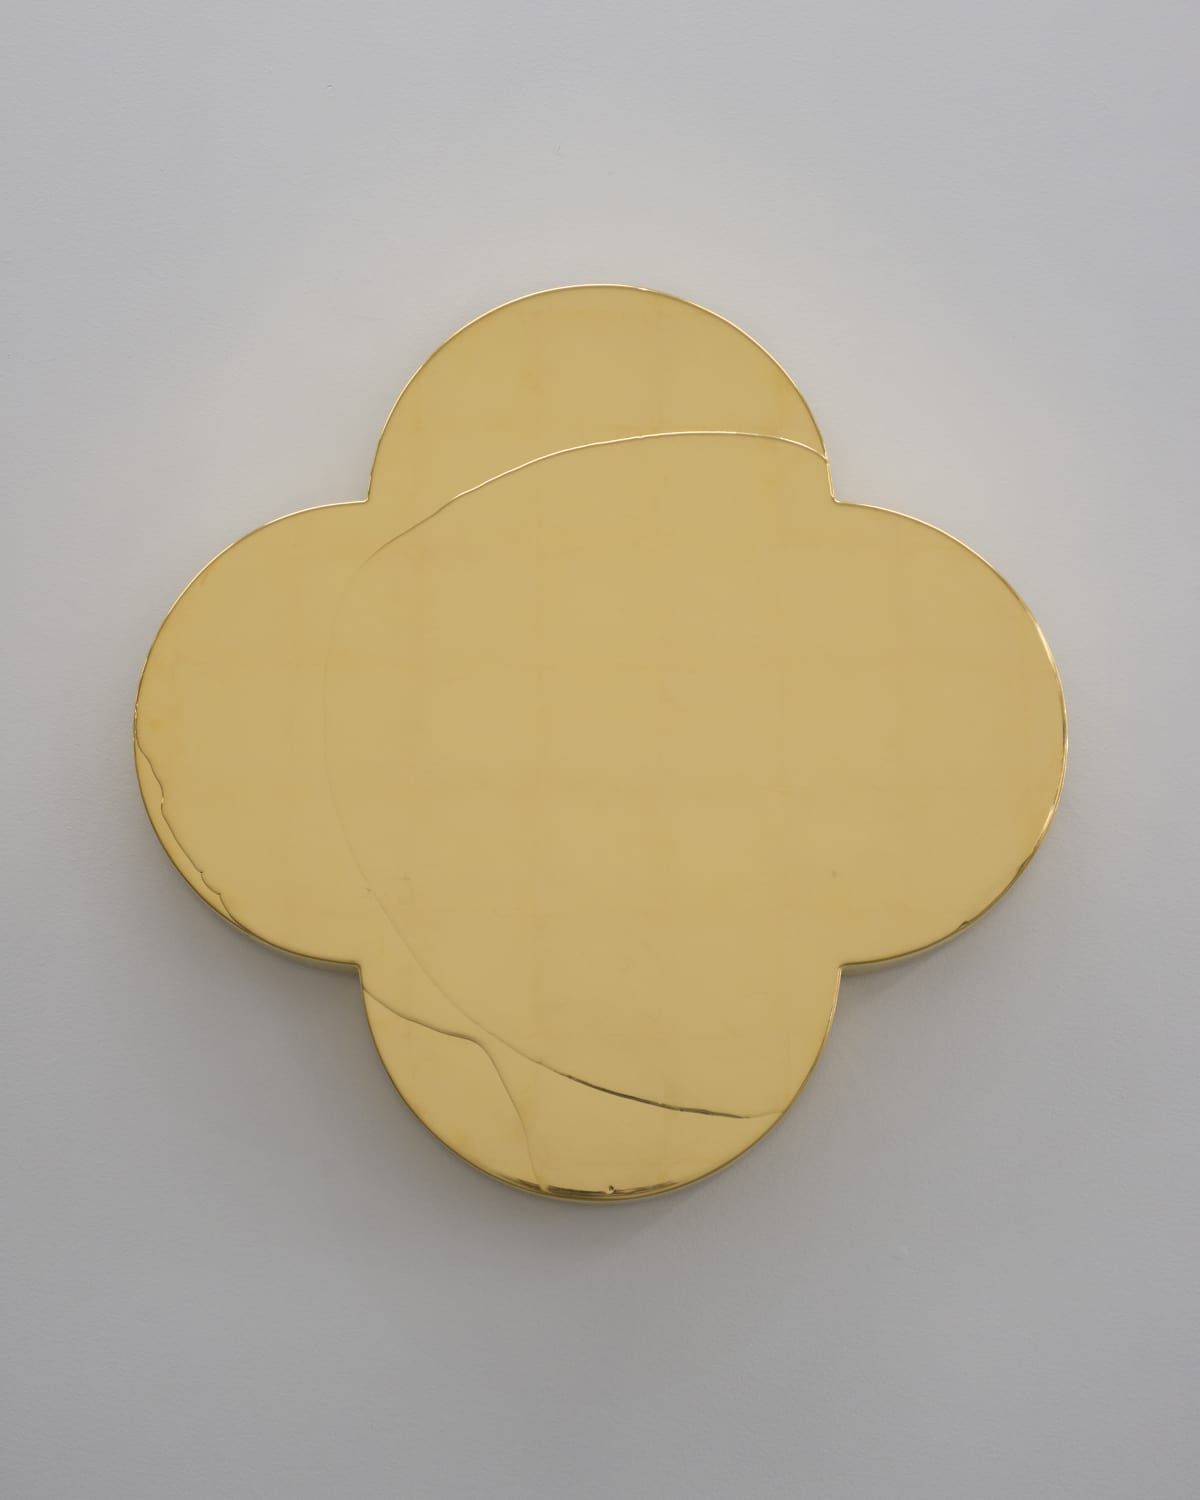 Max GIMBLETT, Flame of Gold, 2017